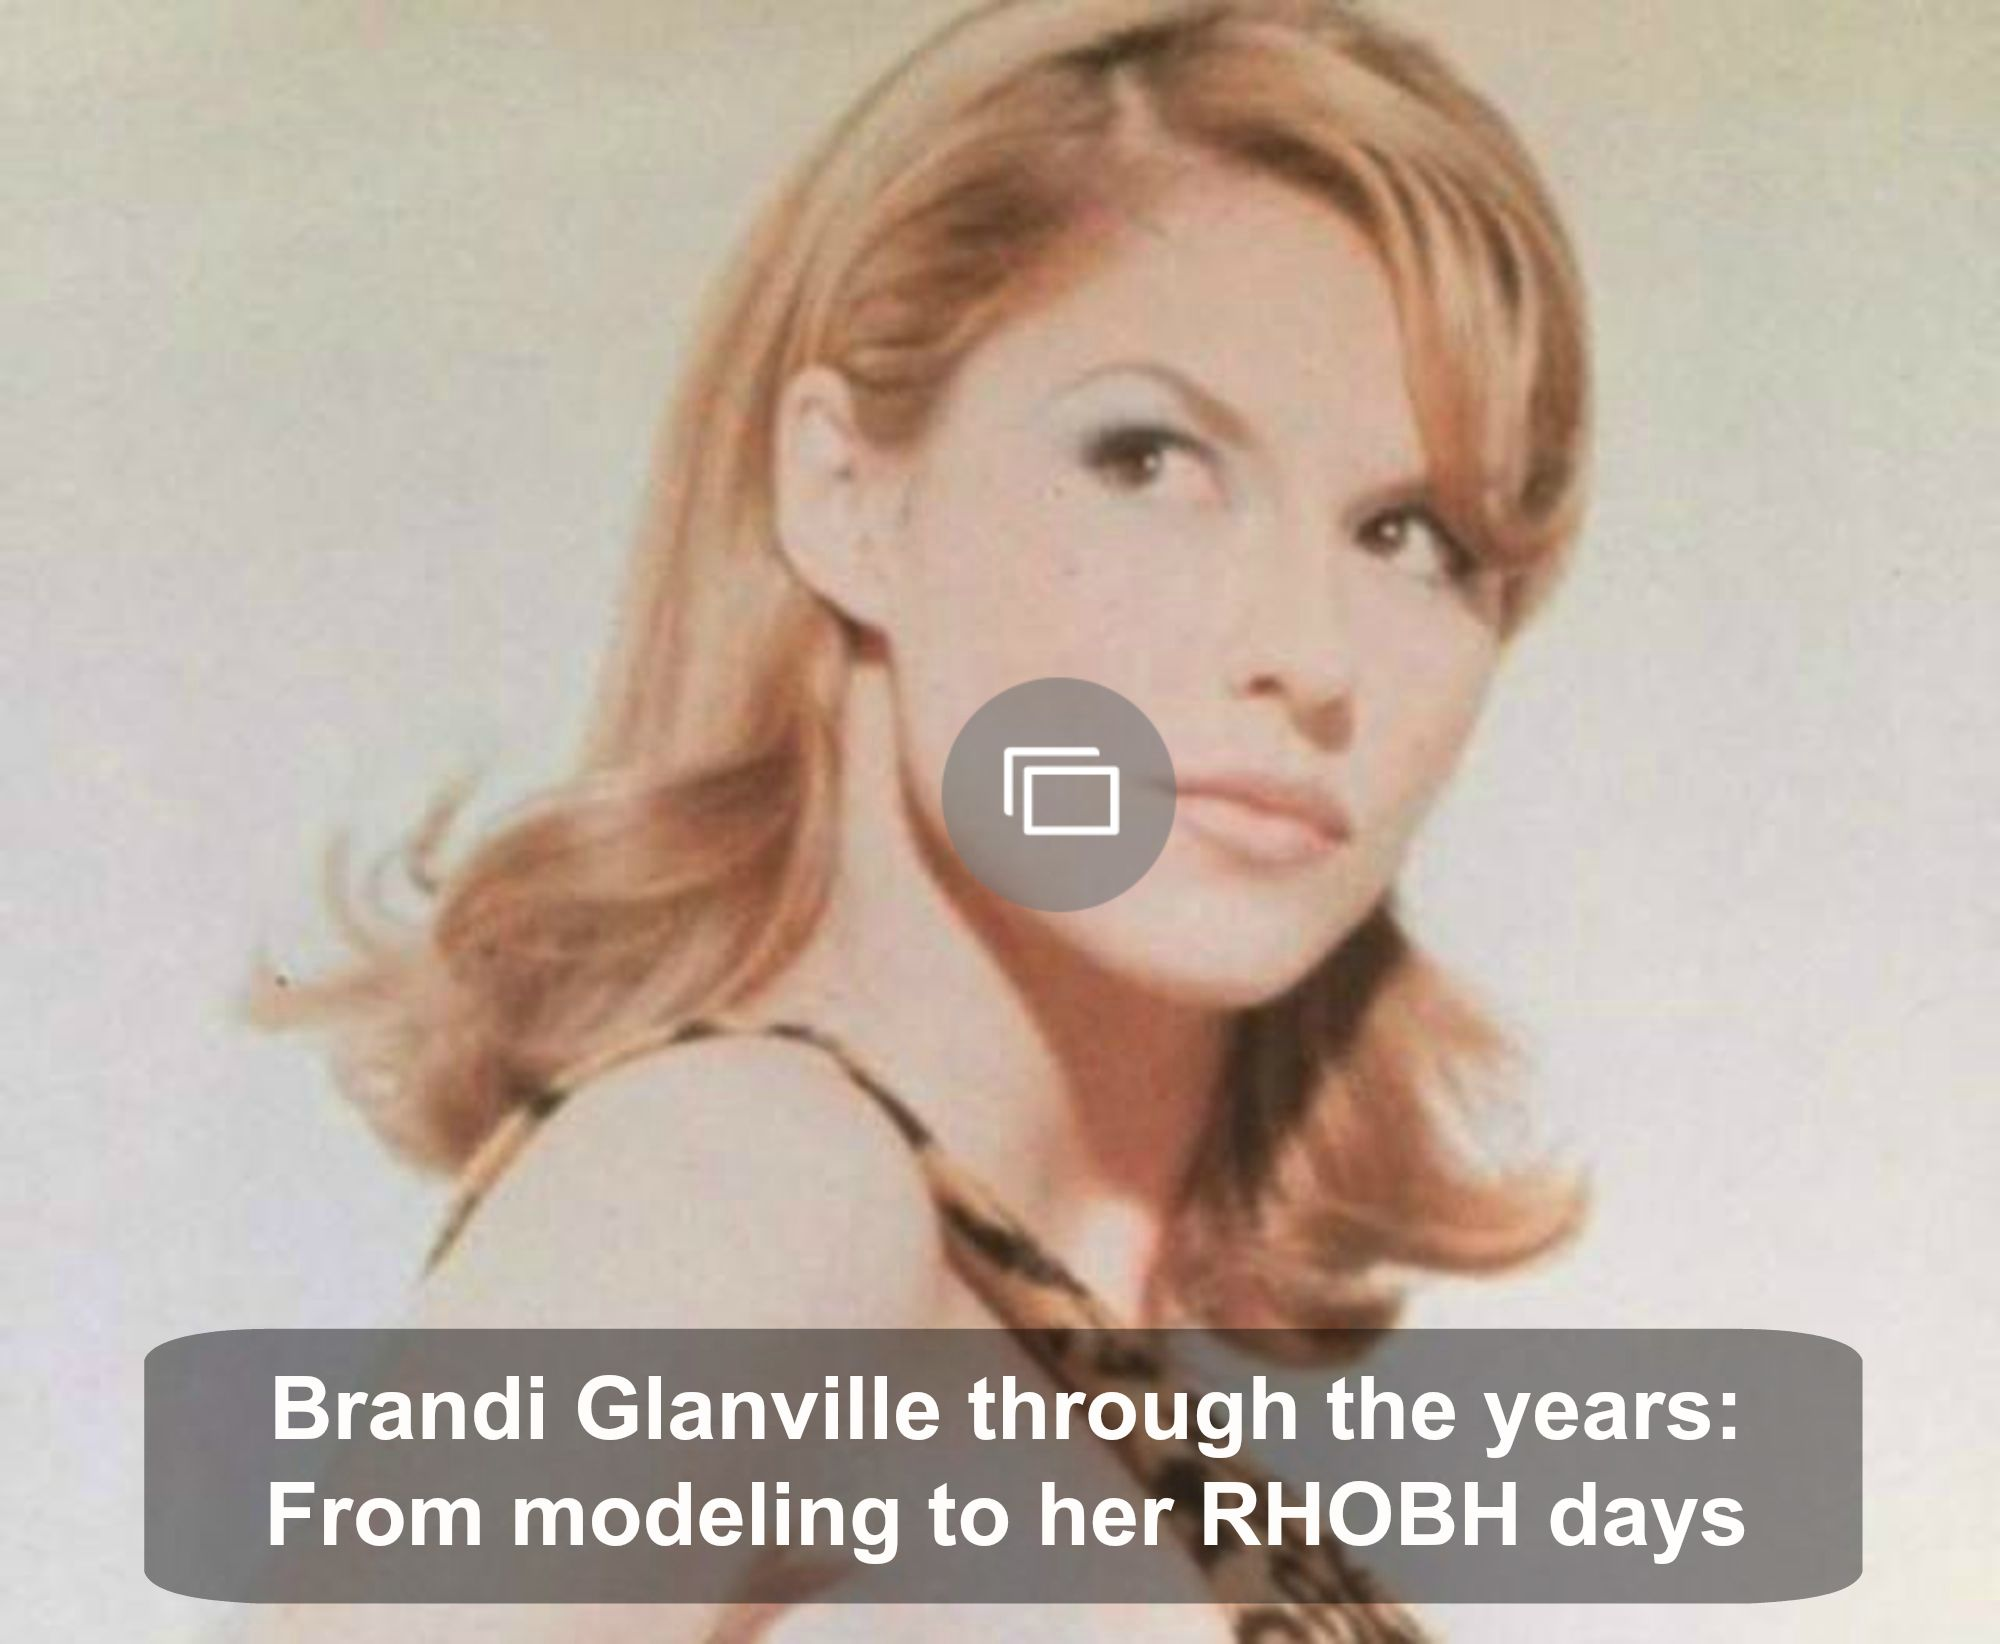 Oh boy, we really hope Brandi Glanville finds herself a man, because this could be good news for RHOBH